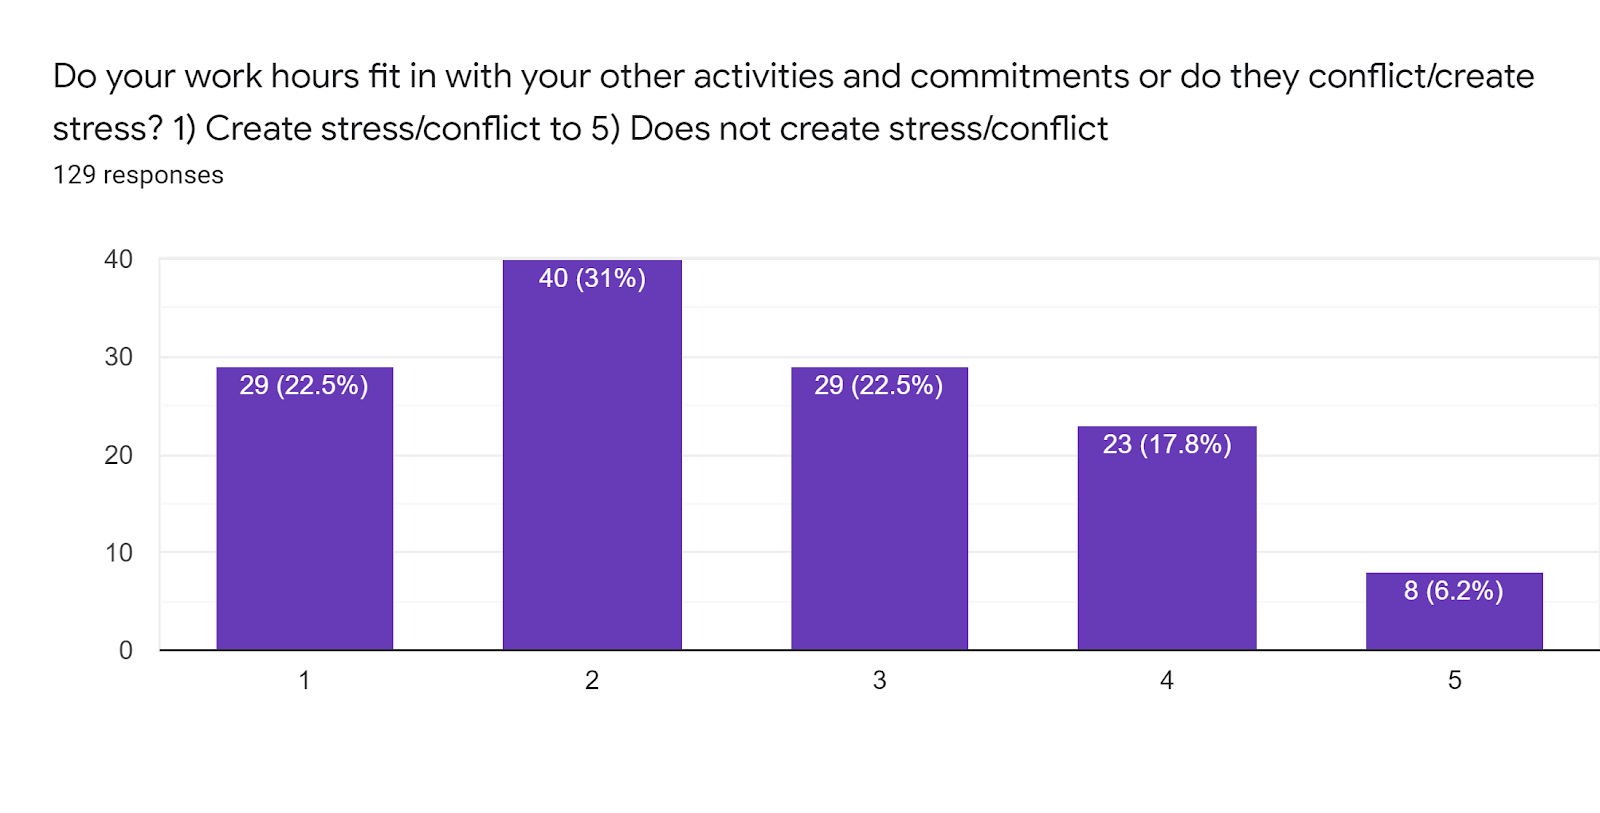 Forms response chart. Question title: Do your work hours fit in with your other activities and commitments or do they conflict/create stress? 1) Create stress/conflict to 5) Does not create stress/conflict . Number of responses: 129 responses.